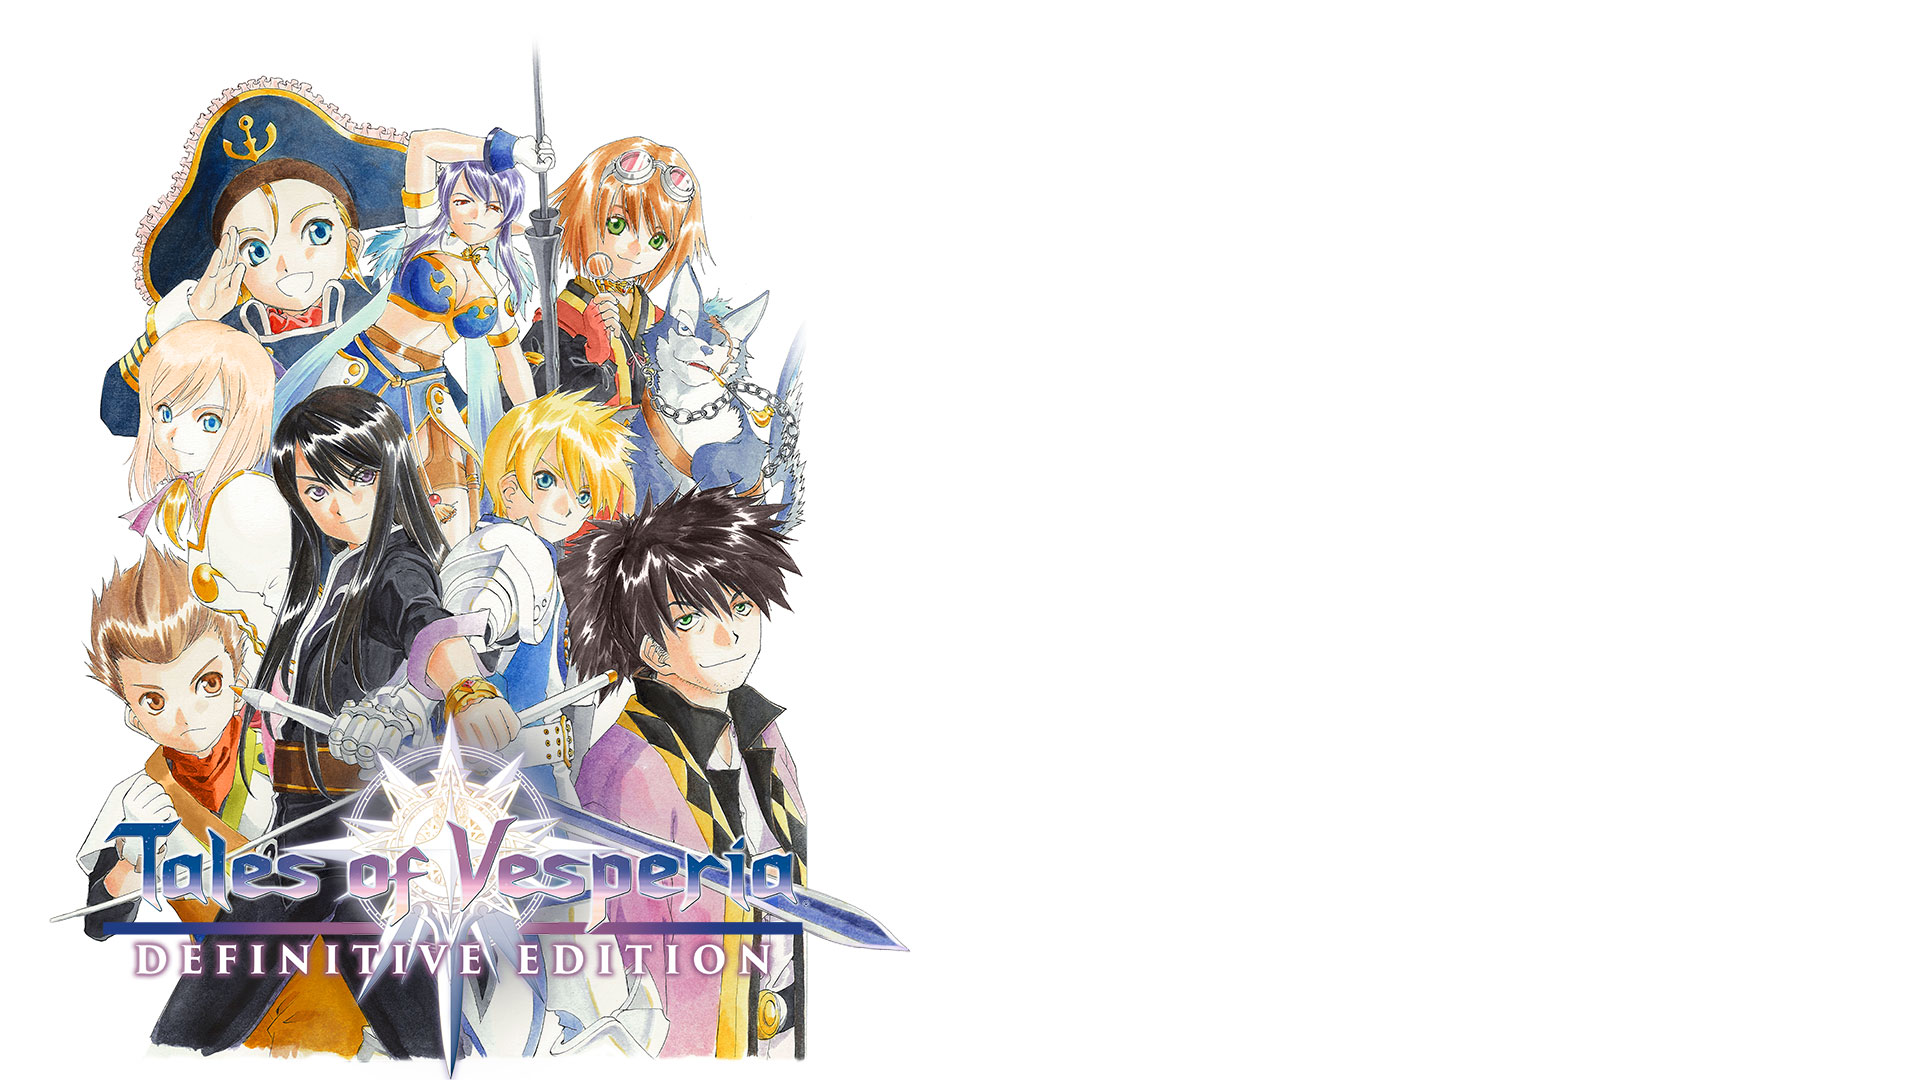 Tales of Vesperia: Definitive Edition, Group of playable characters huddled close together.